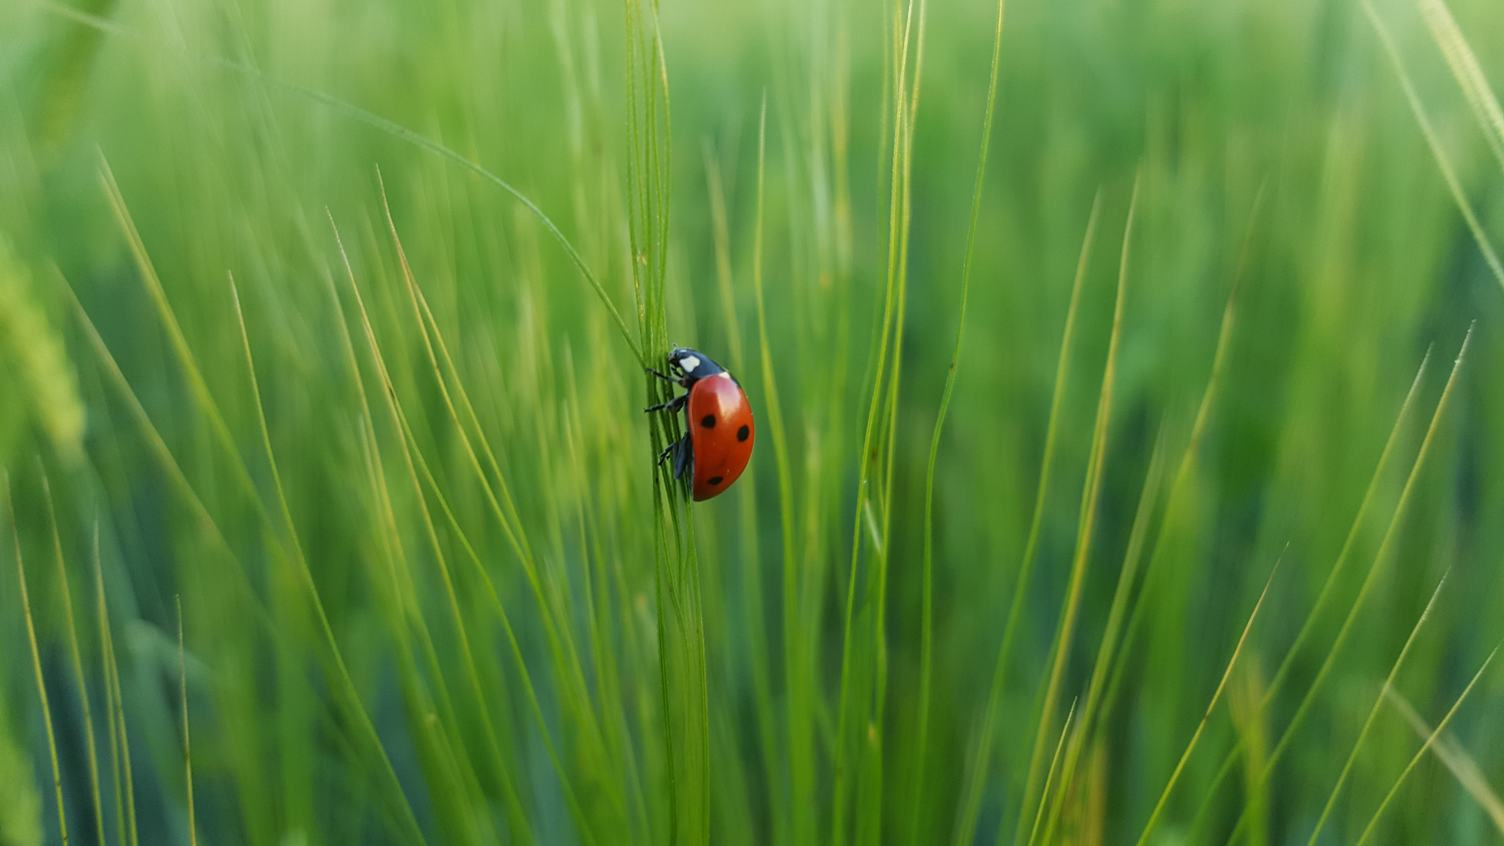 Cute Ladybug on Grass on a Green Blurred Background